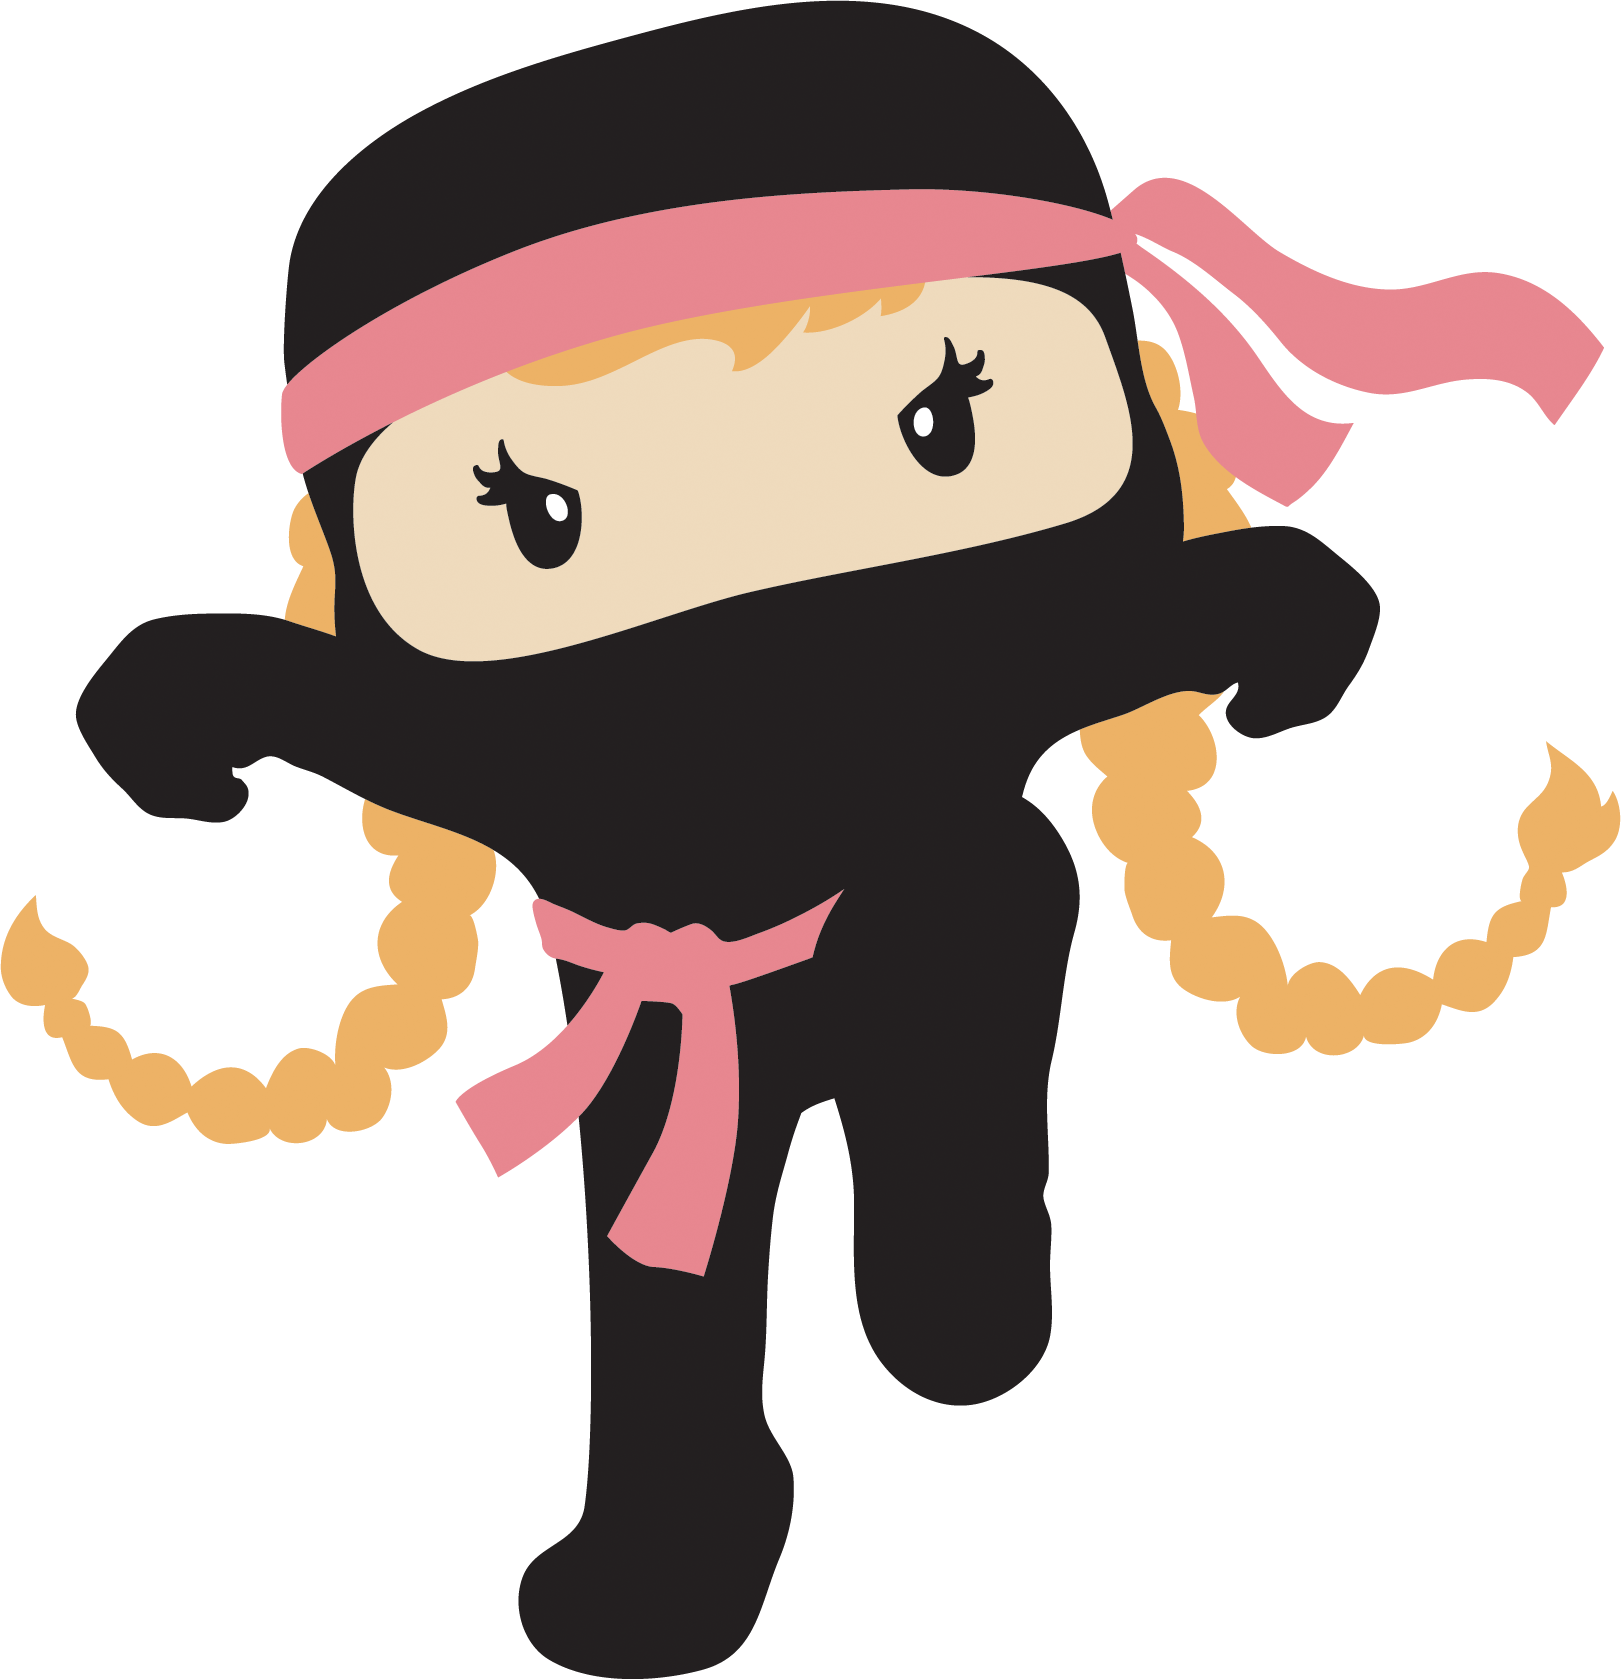 png library stock Ninja clipart.  collection of png.